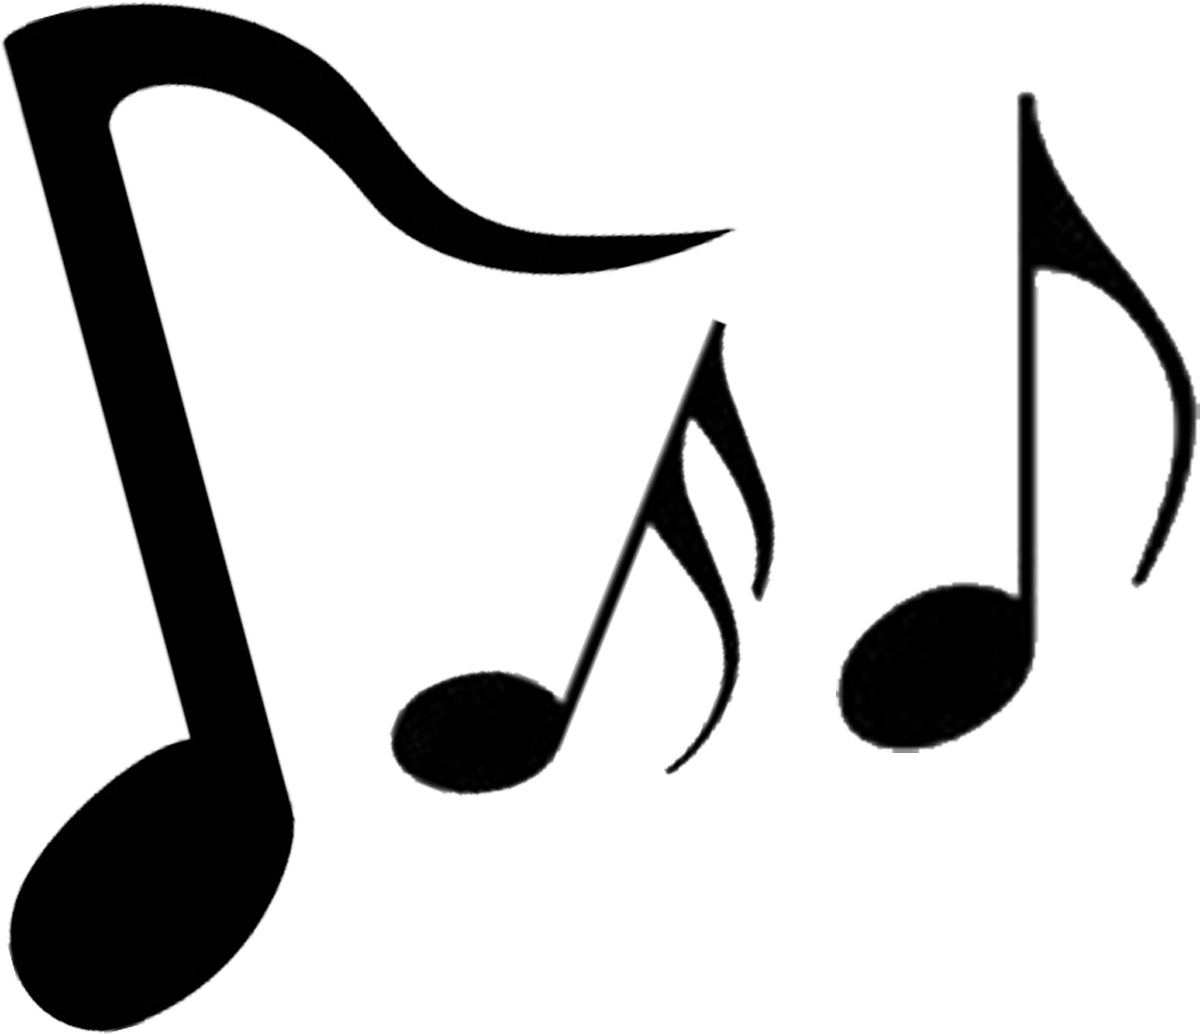 Spring band music clipart black and white jpg royalty free download Music Clipart Black And White | Free download best Music ... jpg royalty free download